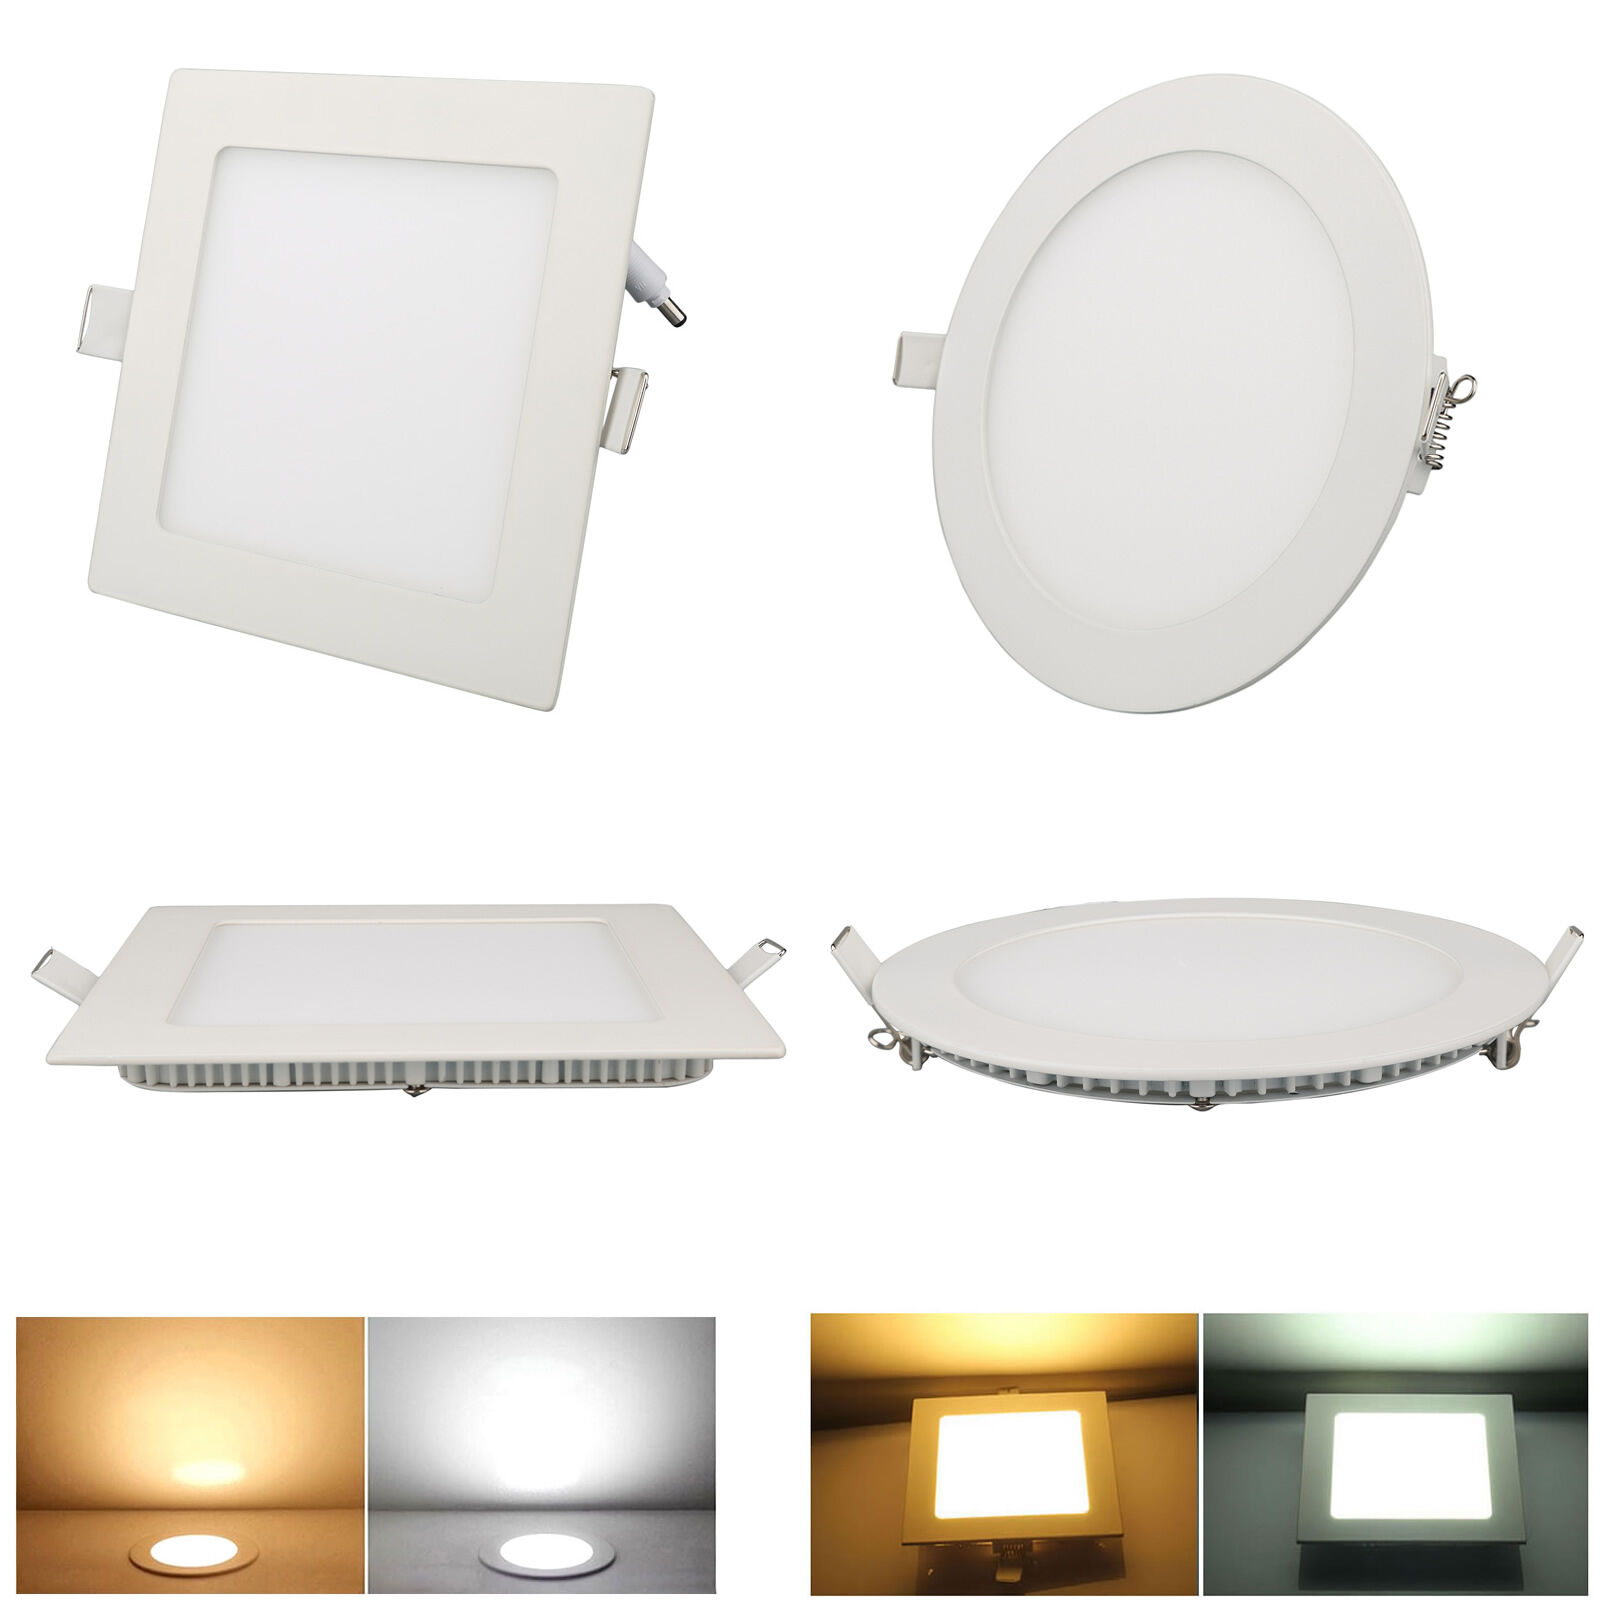 Dimmable Recessed Led Panel Light Roud Square Downlight Ceiling 3W-24W Thin Lamp